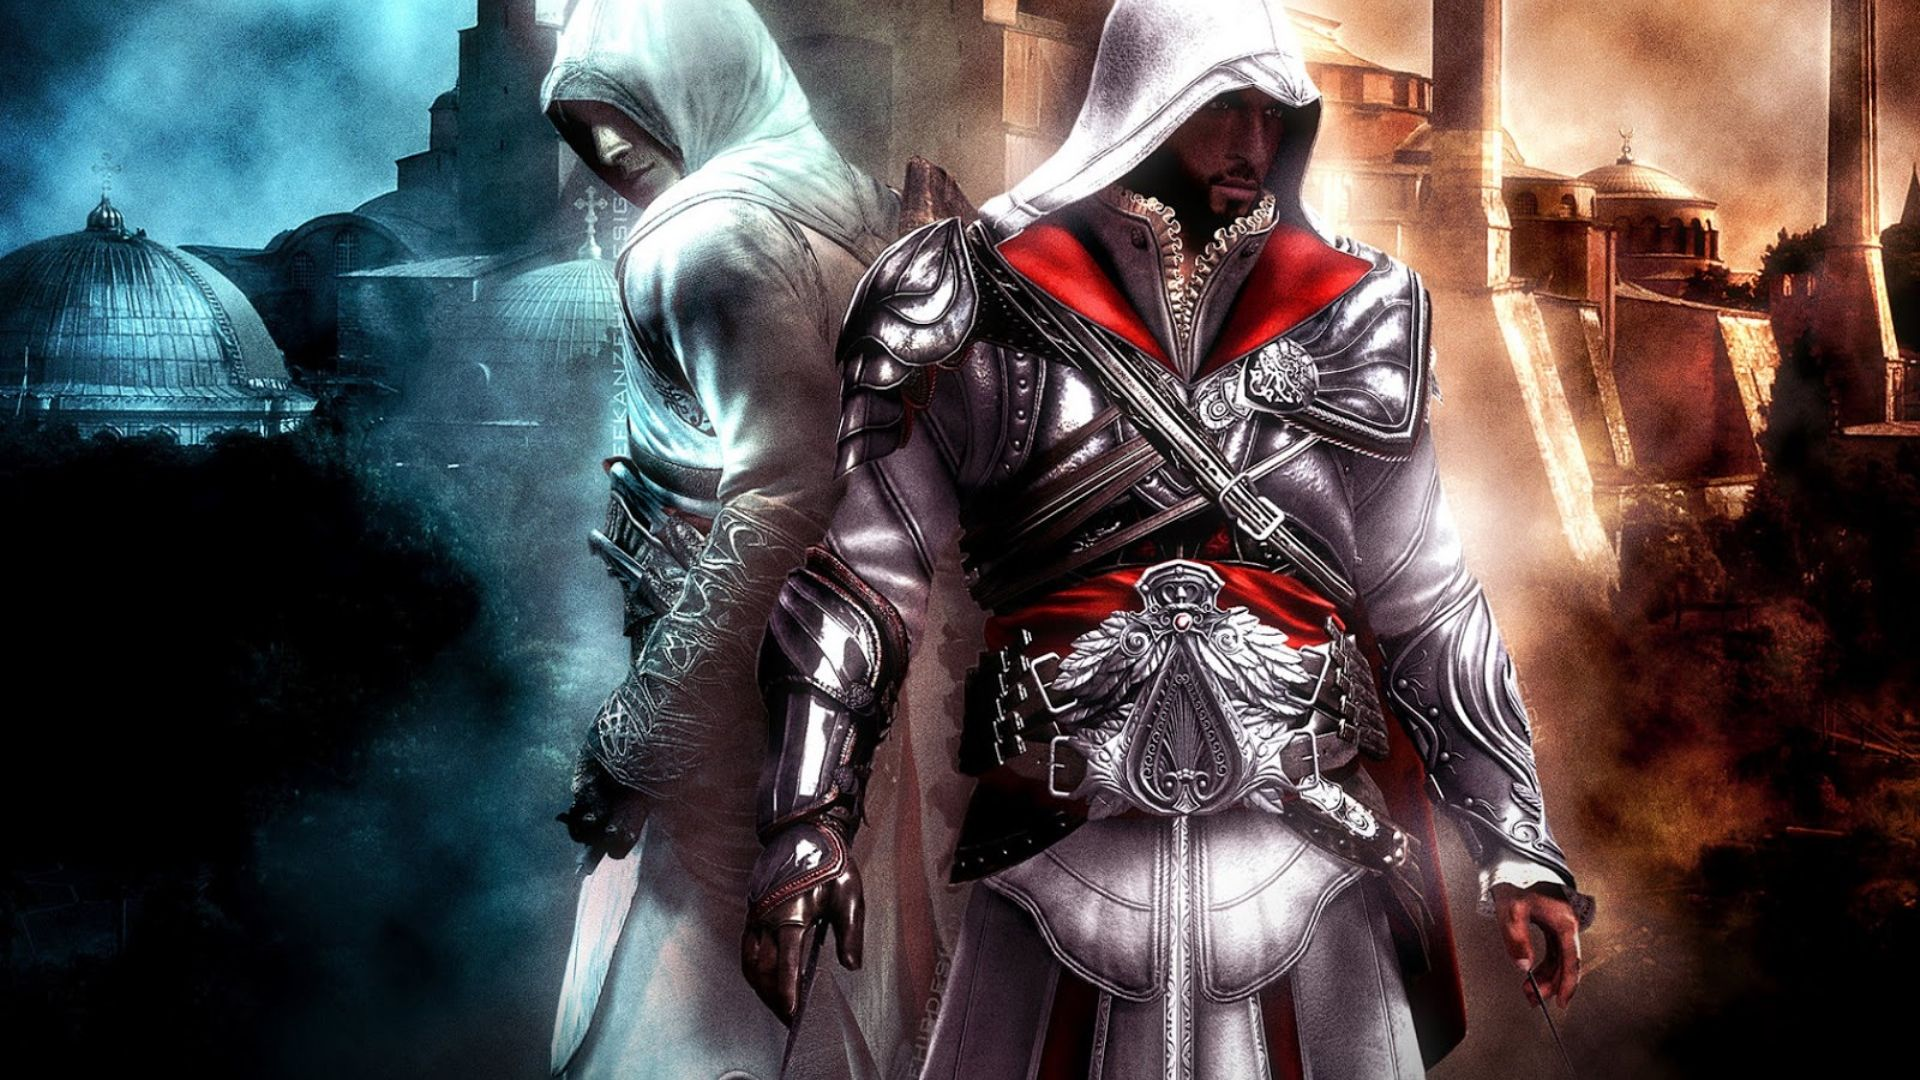 Assassins Creed Revelations Wallpapers Pictures Images